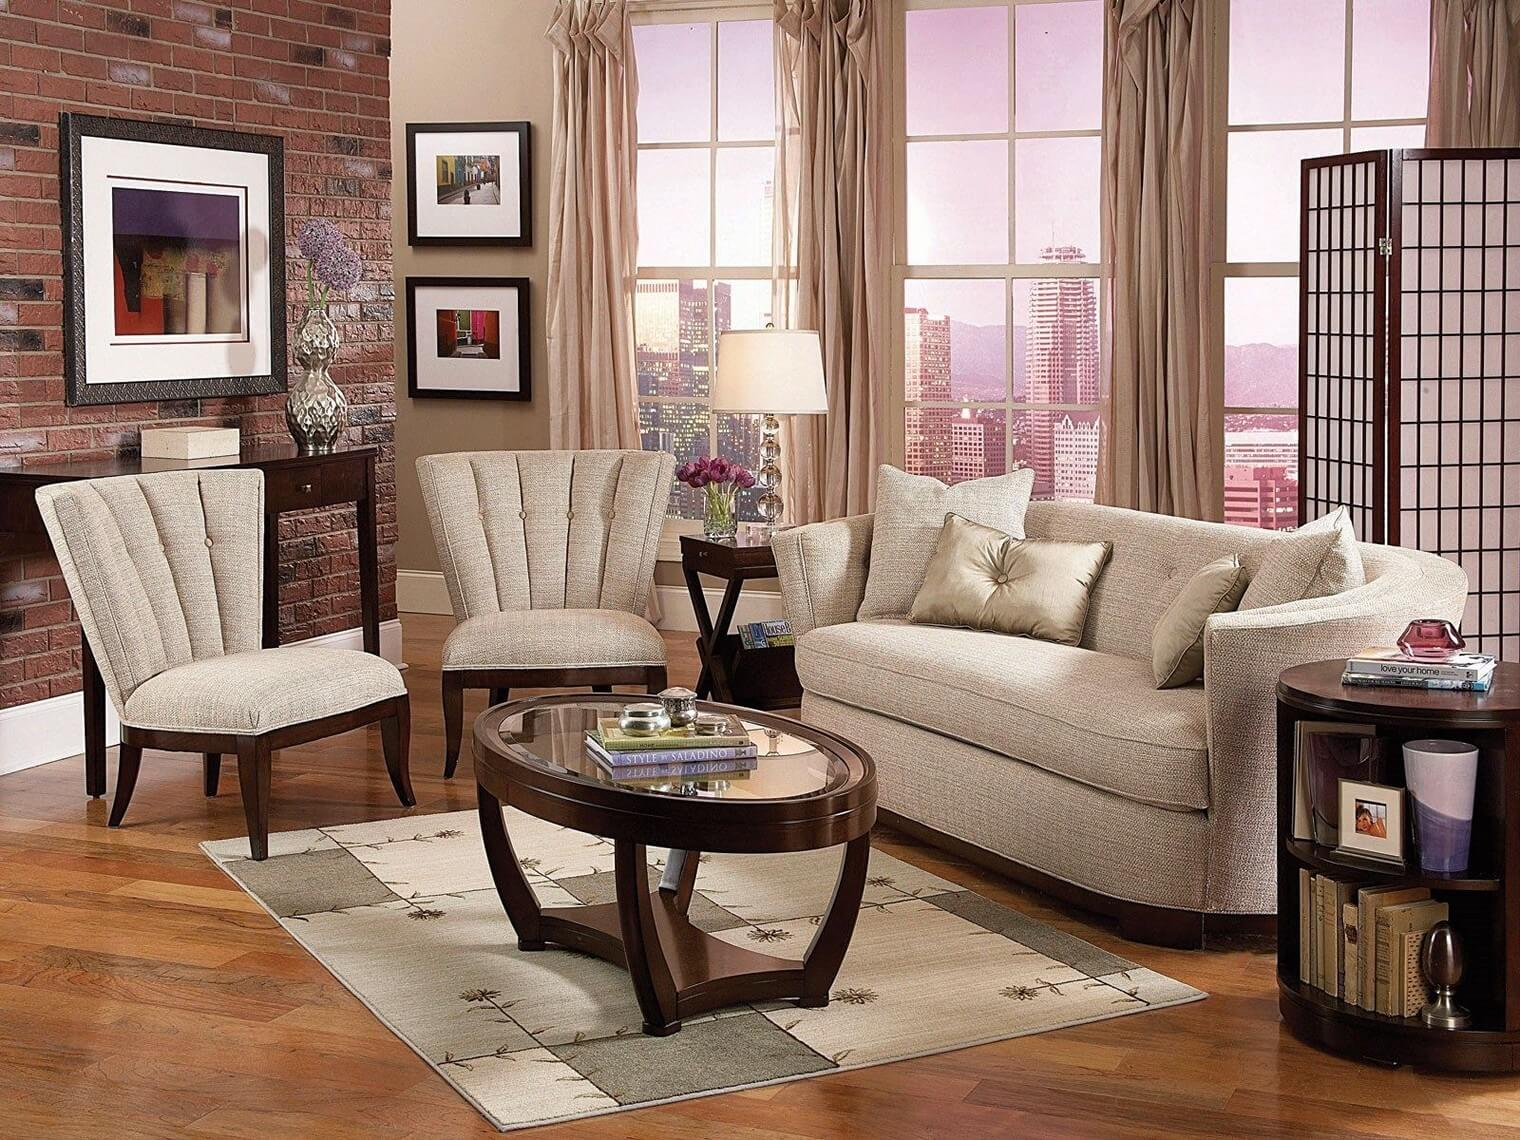 124 great living room ideas and designs photo gallery for Living room farnichar